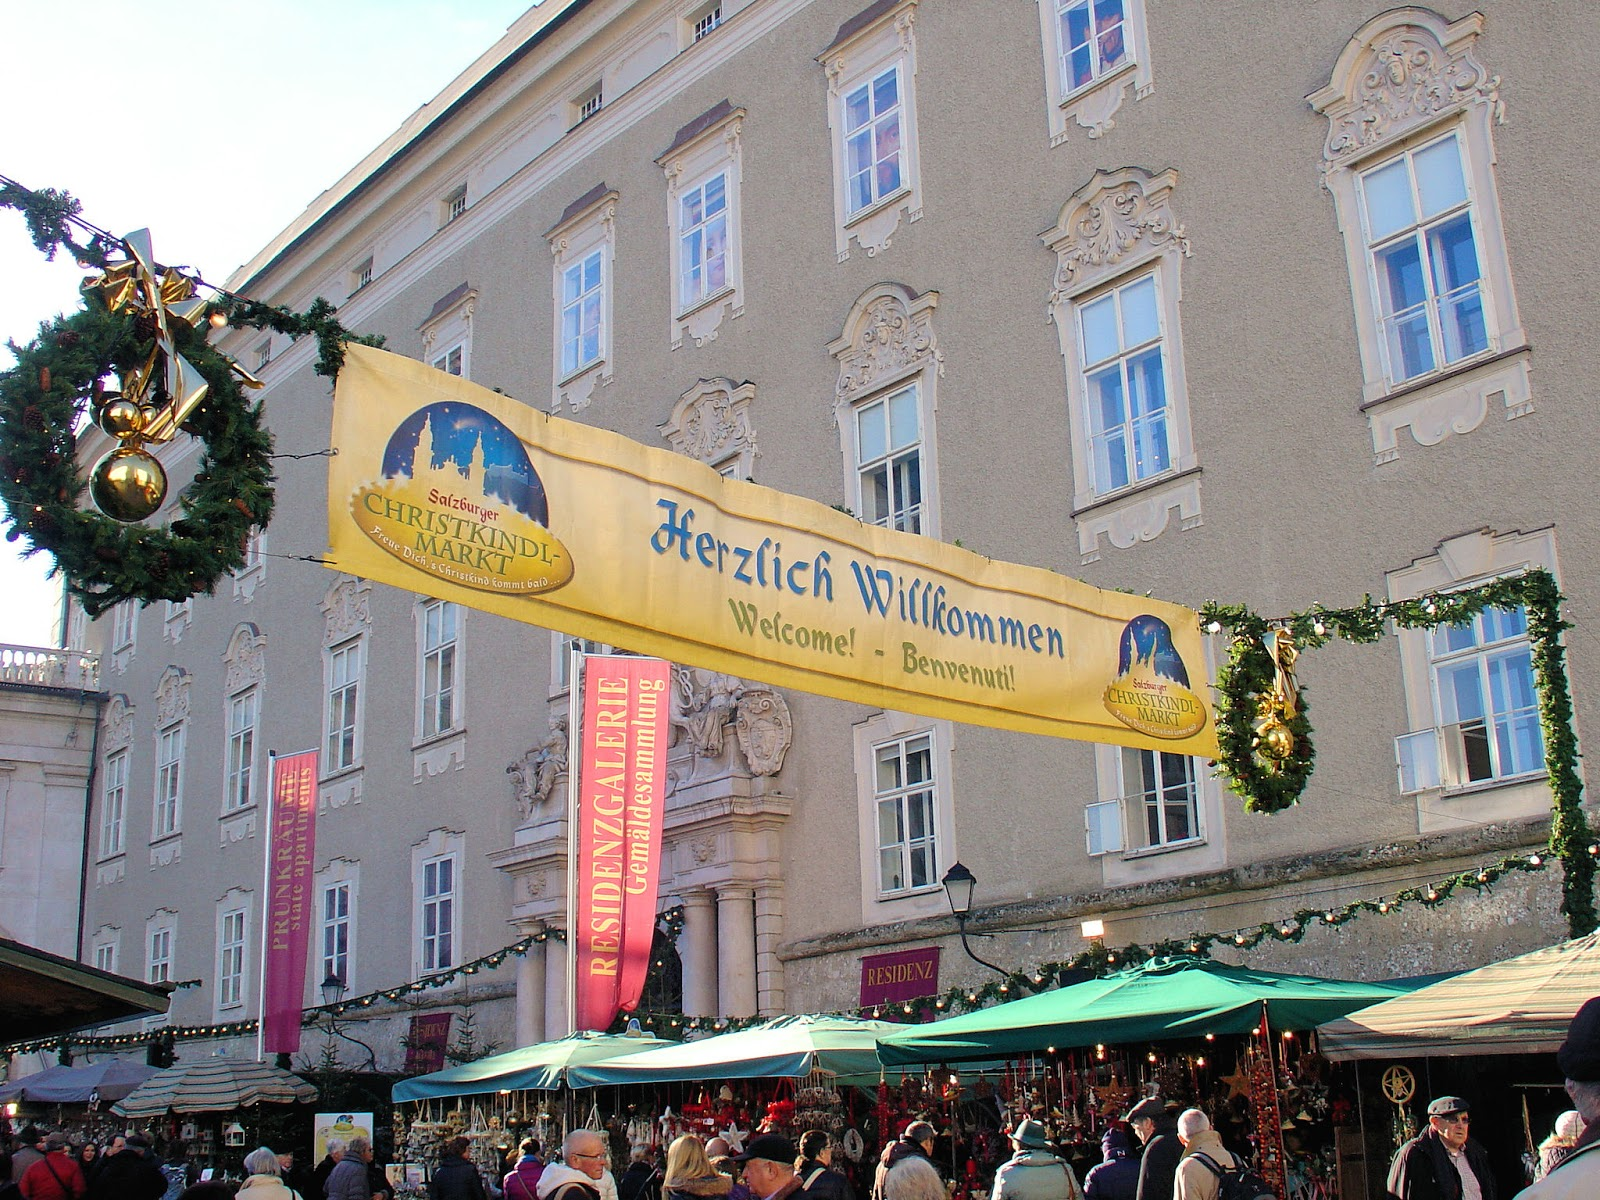 Welcome to Salzburg Christmas Market. Photo: EuroTravelogue™. Unauthorized use is prohibited.